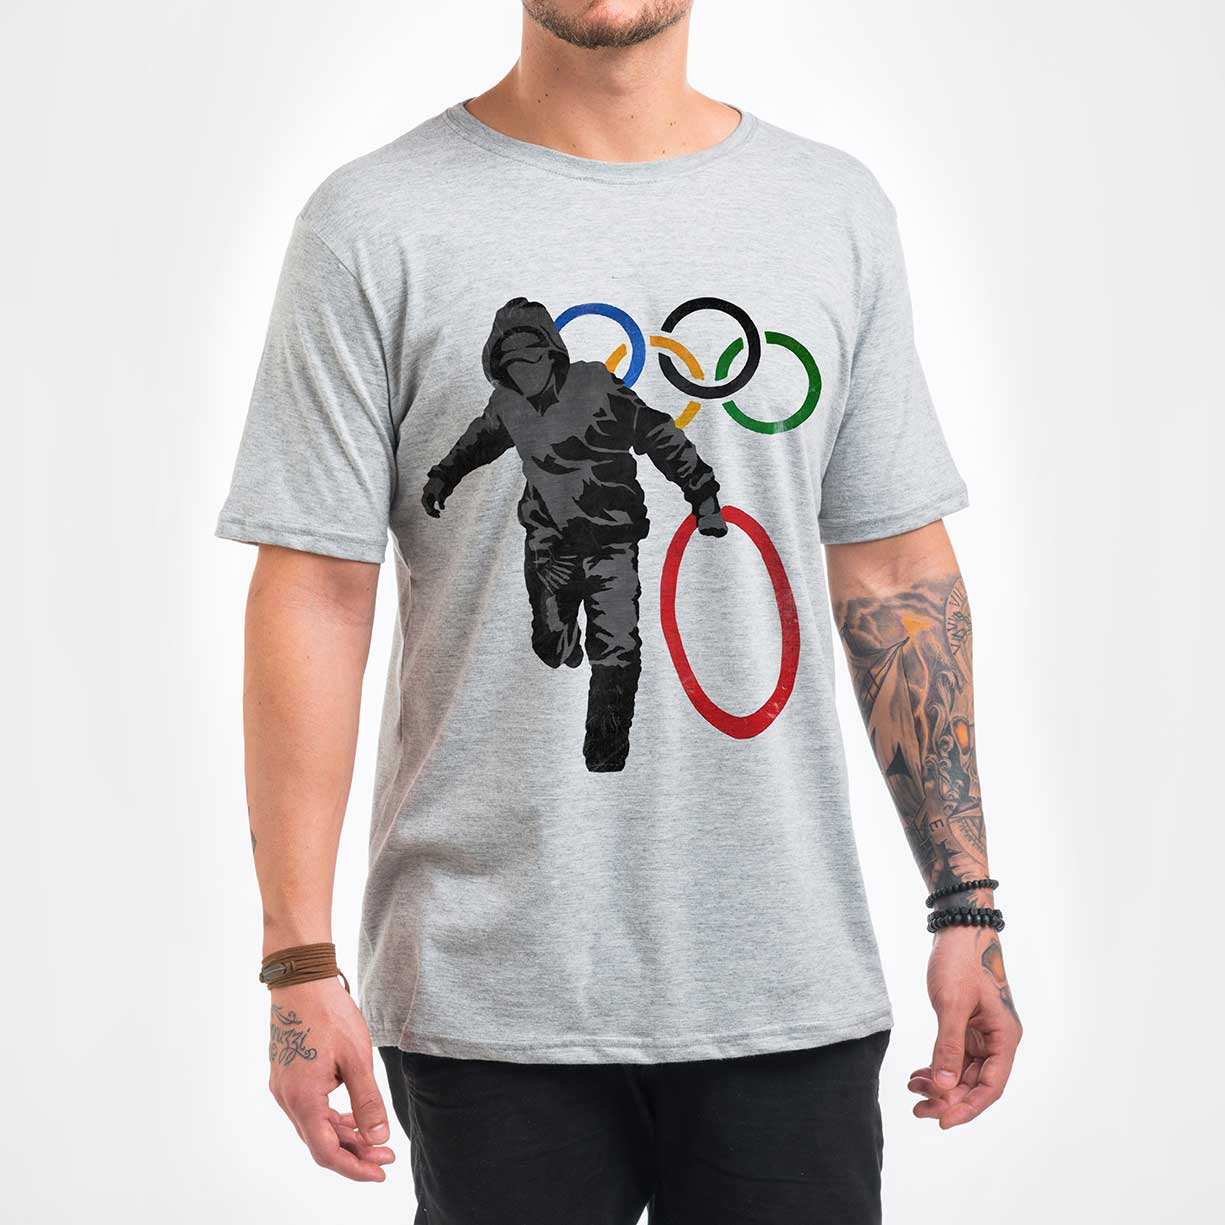 Camisa Masculina - Olympic Rings